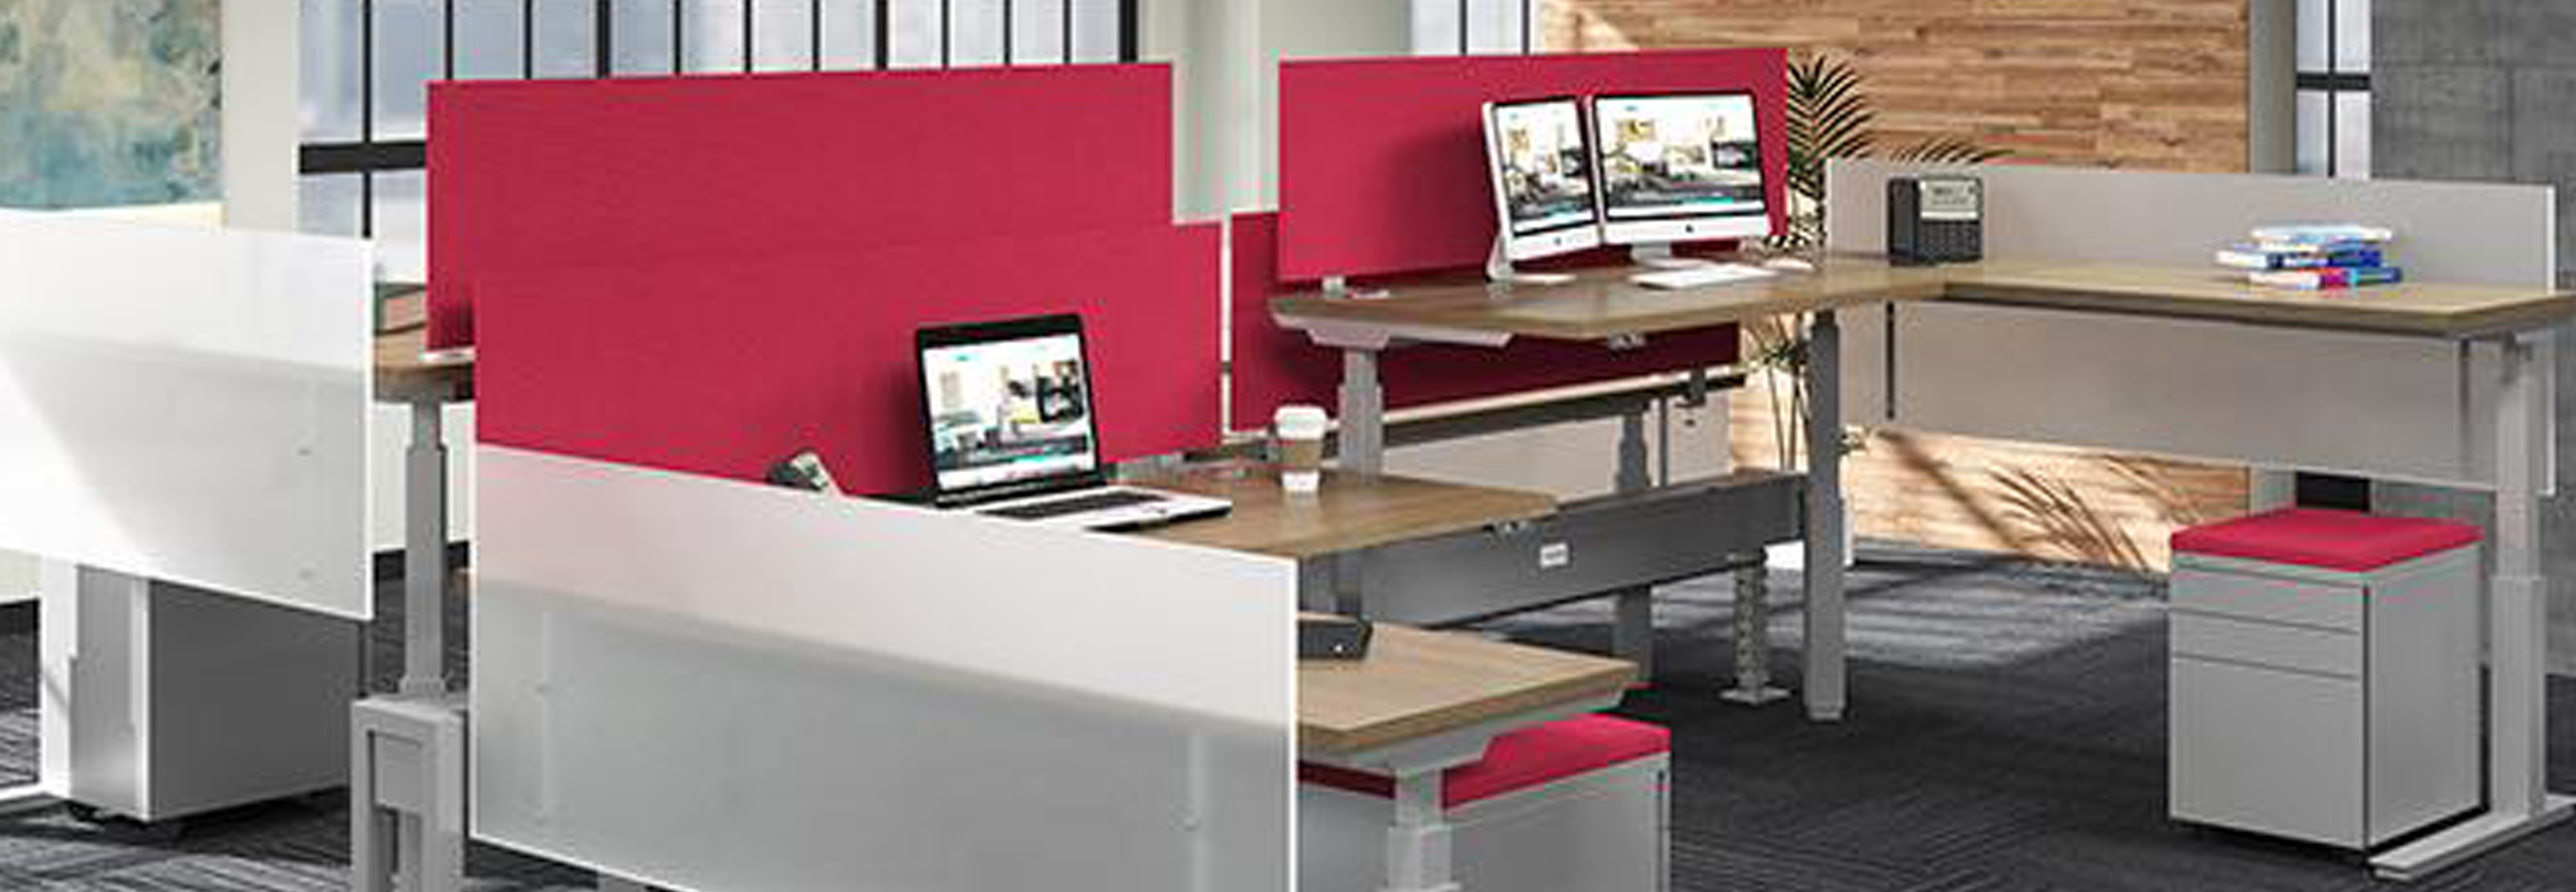 lease office furniture austin